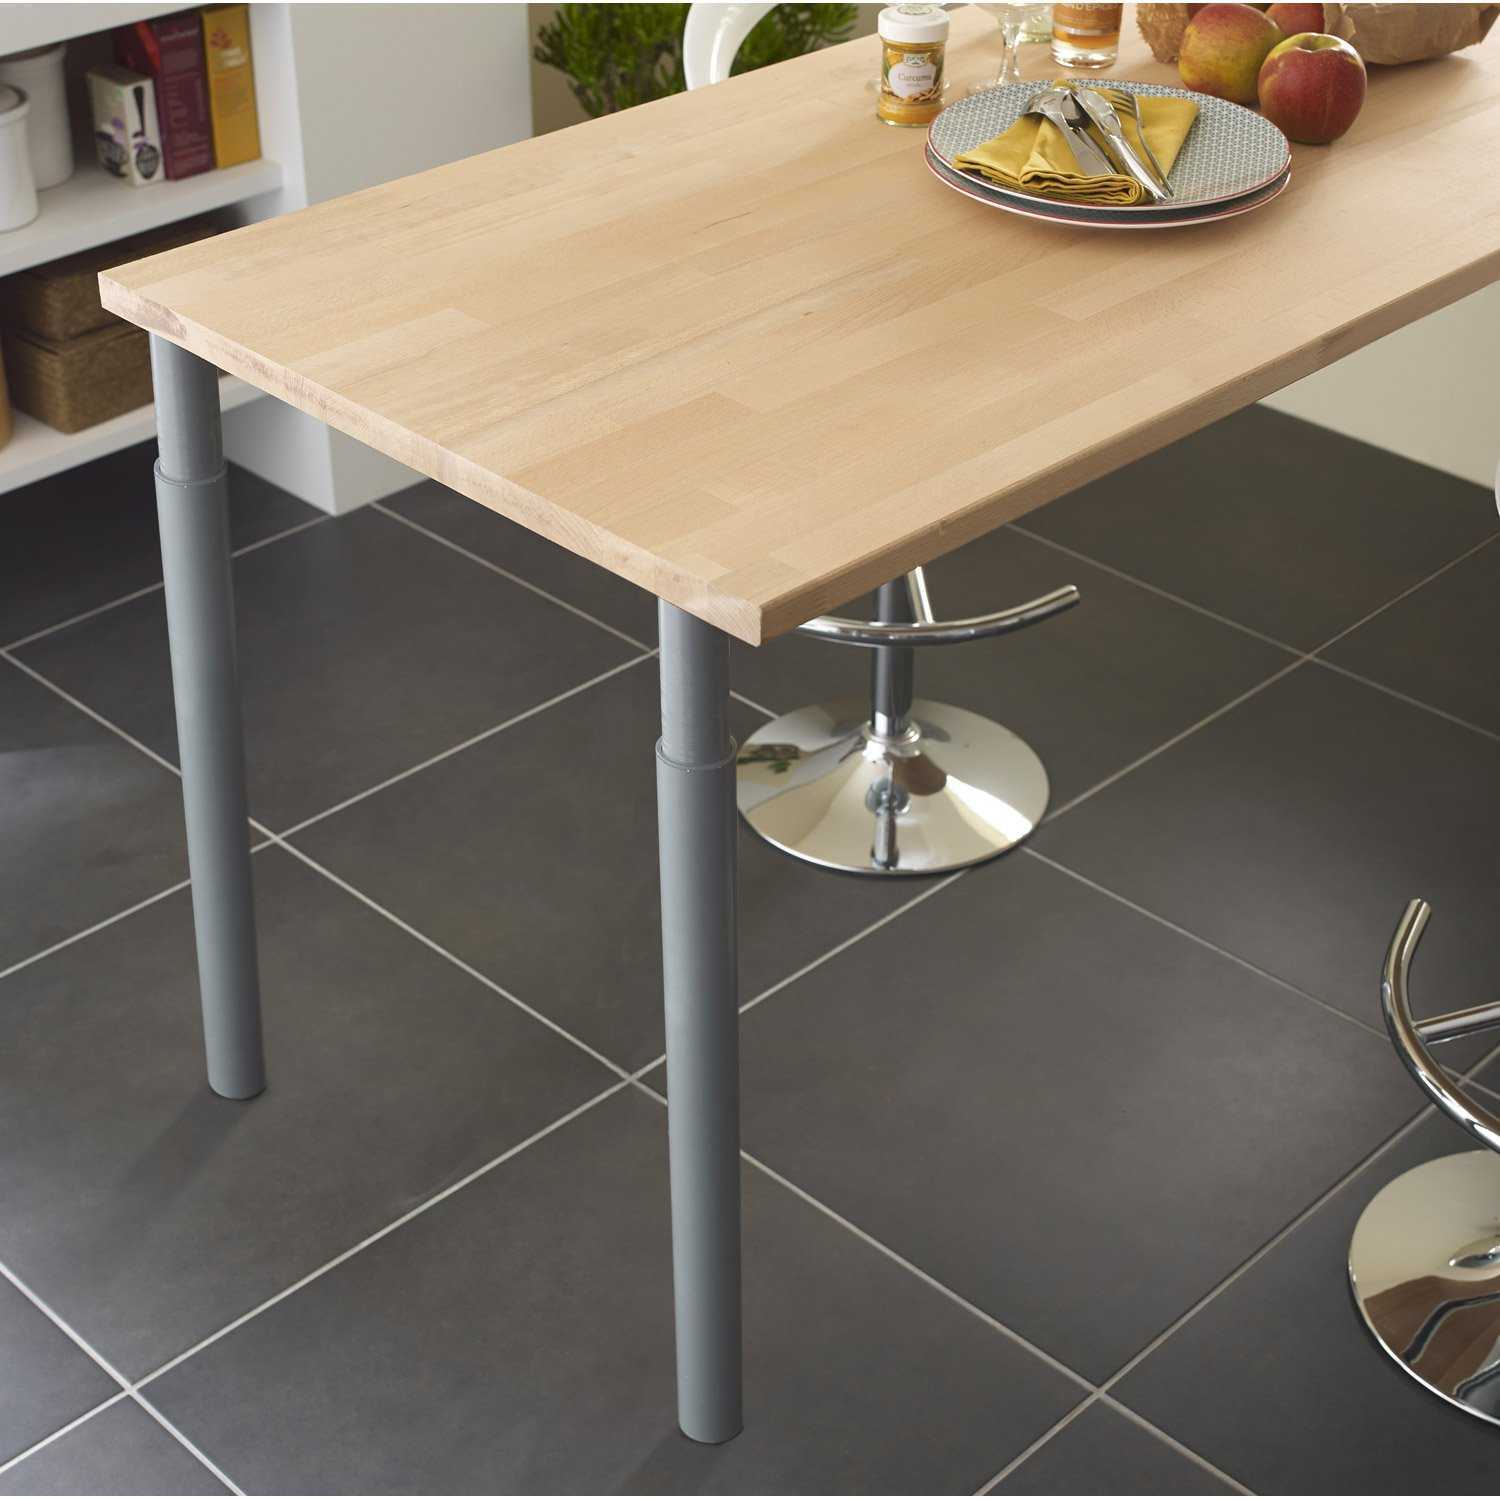 plan de travail amovible pour cuisine lille maison. Black Bedroom Furniture Sets. Home Design Ideas